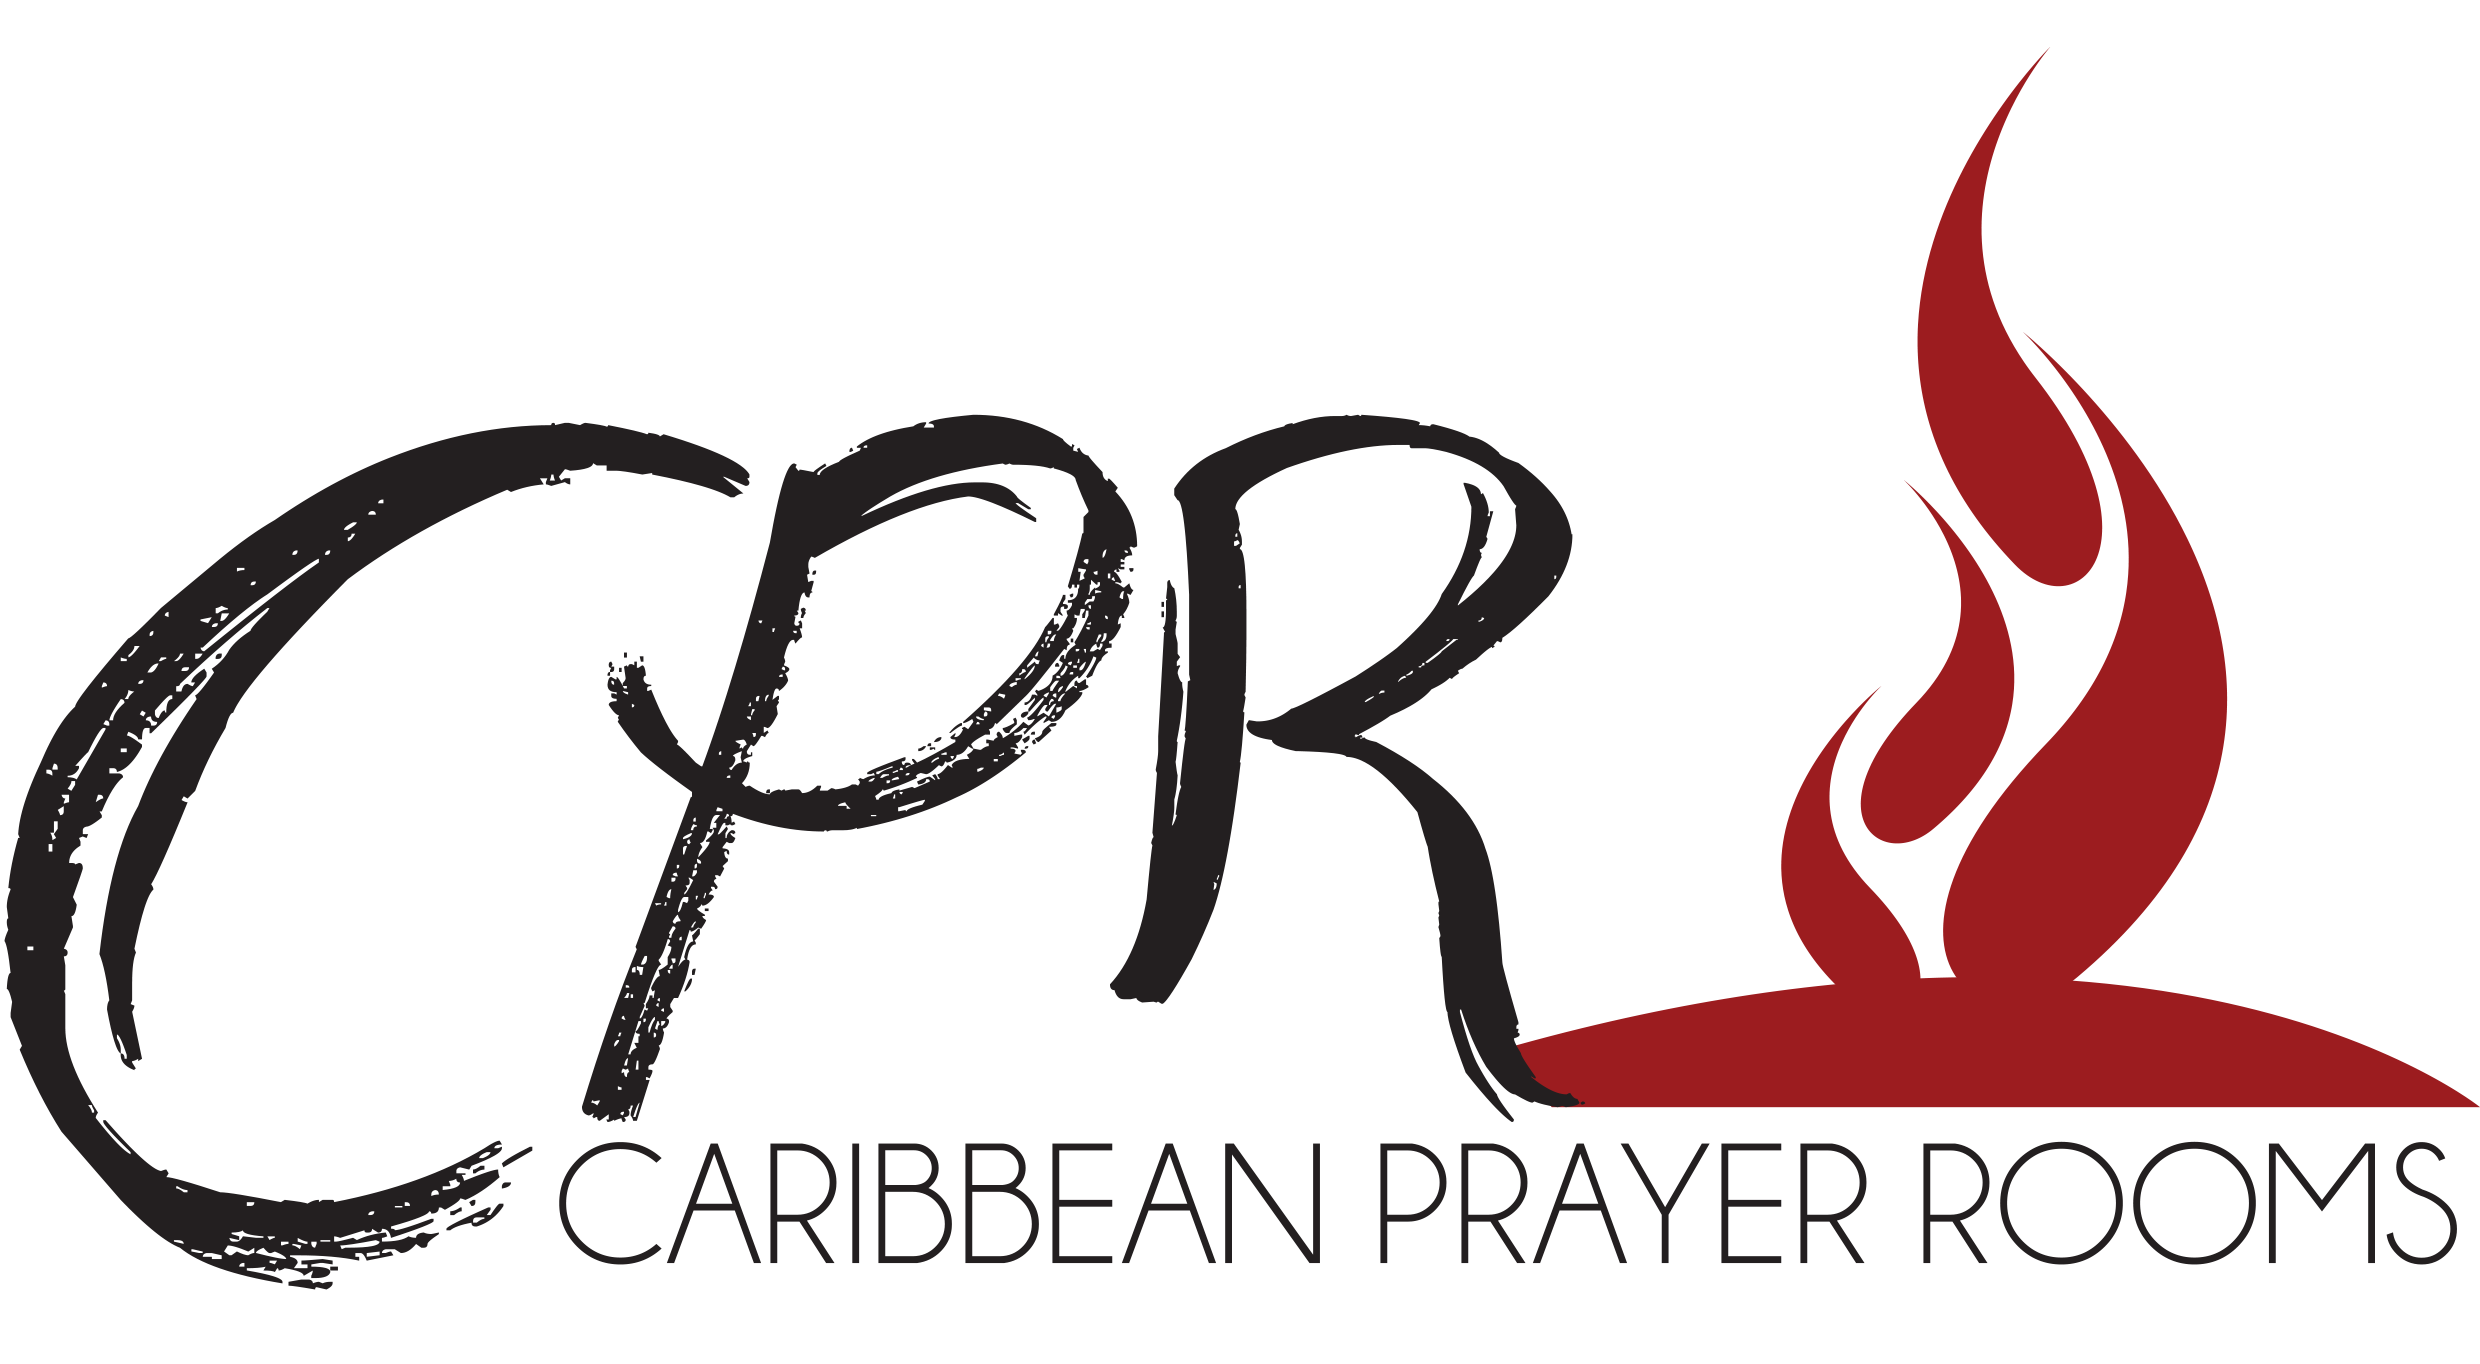 Warrior clipart prayer. Caribbean rooms ywam barbados